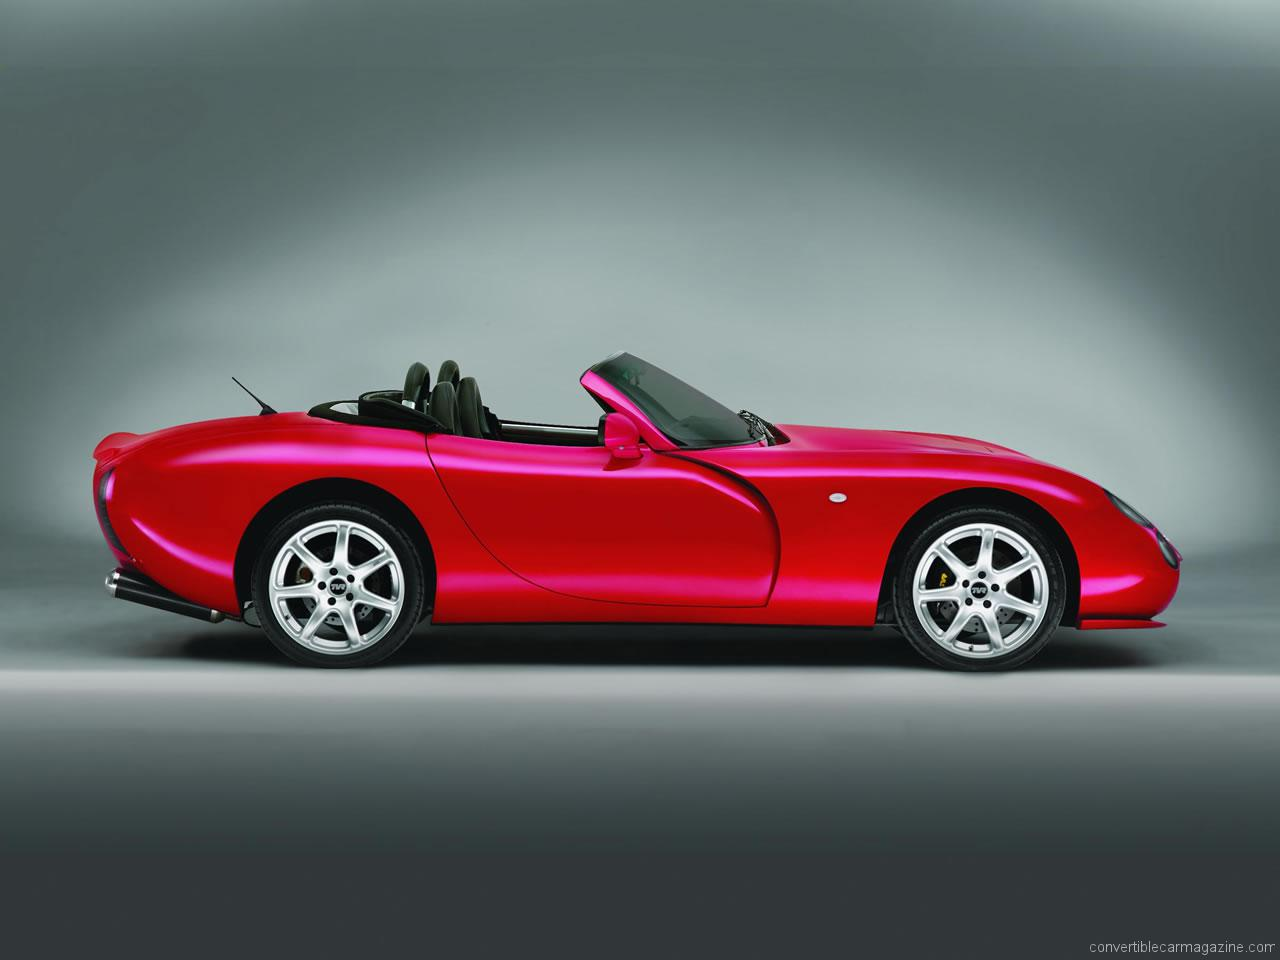 Search 14 Used TVR Cars for Sale Near You | Exchange & Mart